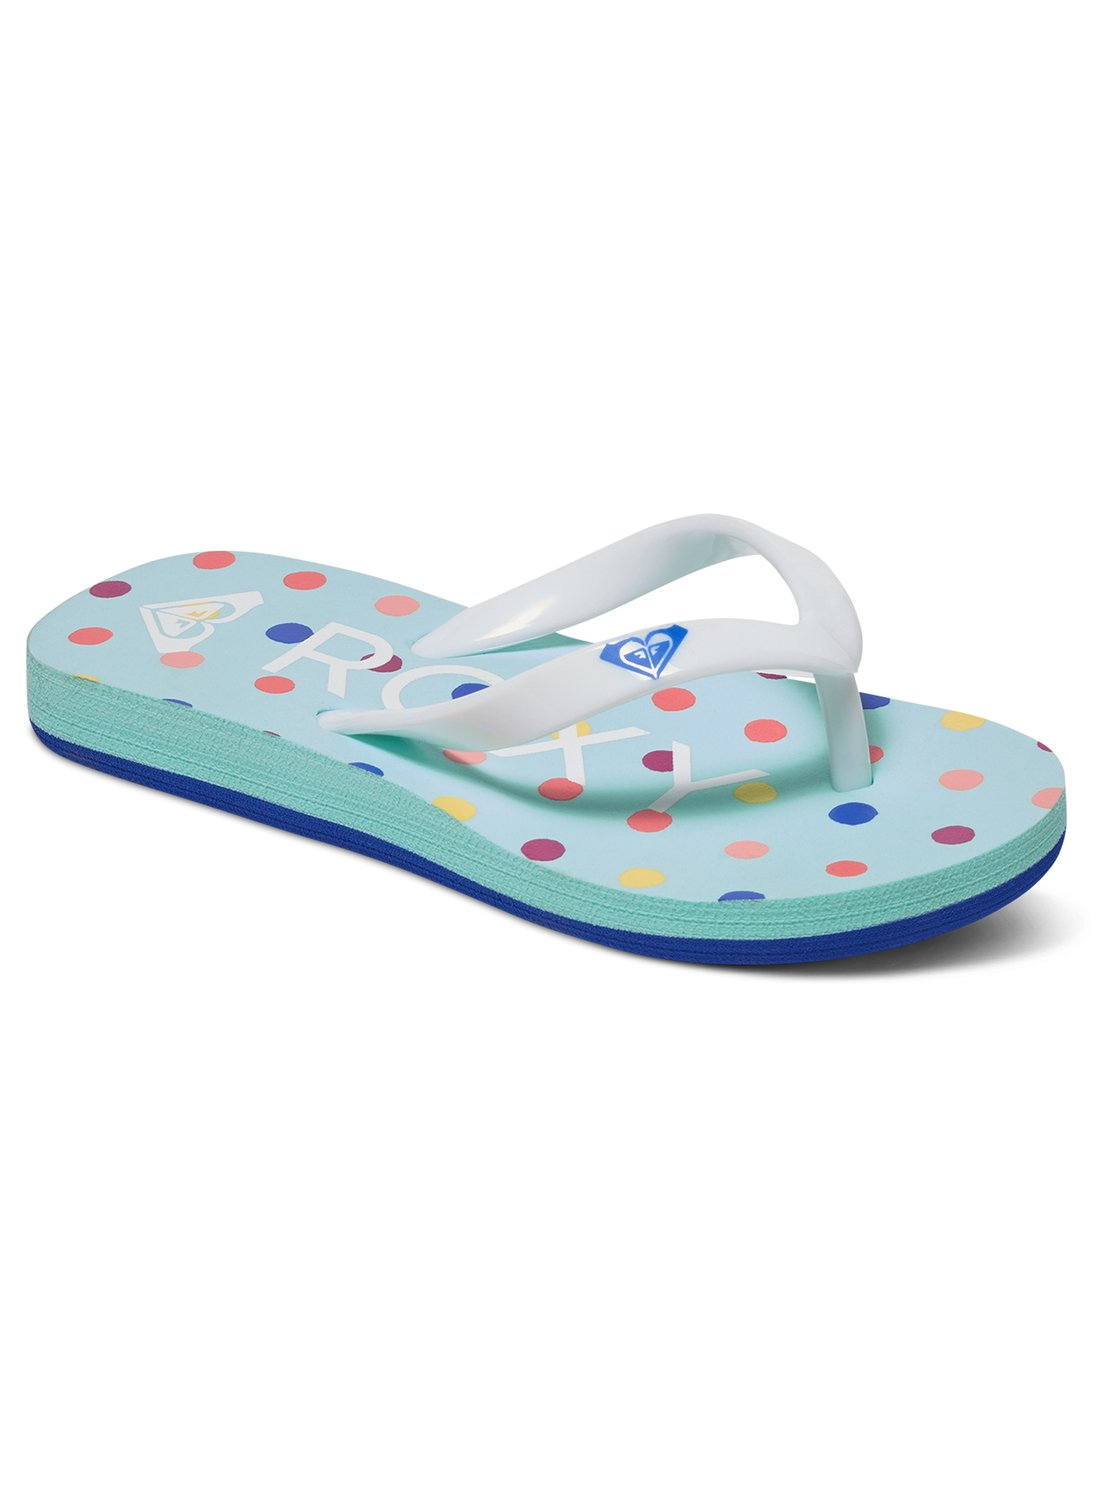 dc5b0f9d7 0 Bamboo - Flip-Flops for Toddlers Blue AROL100002 Roxy